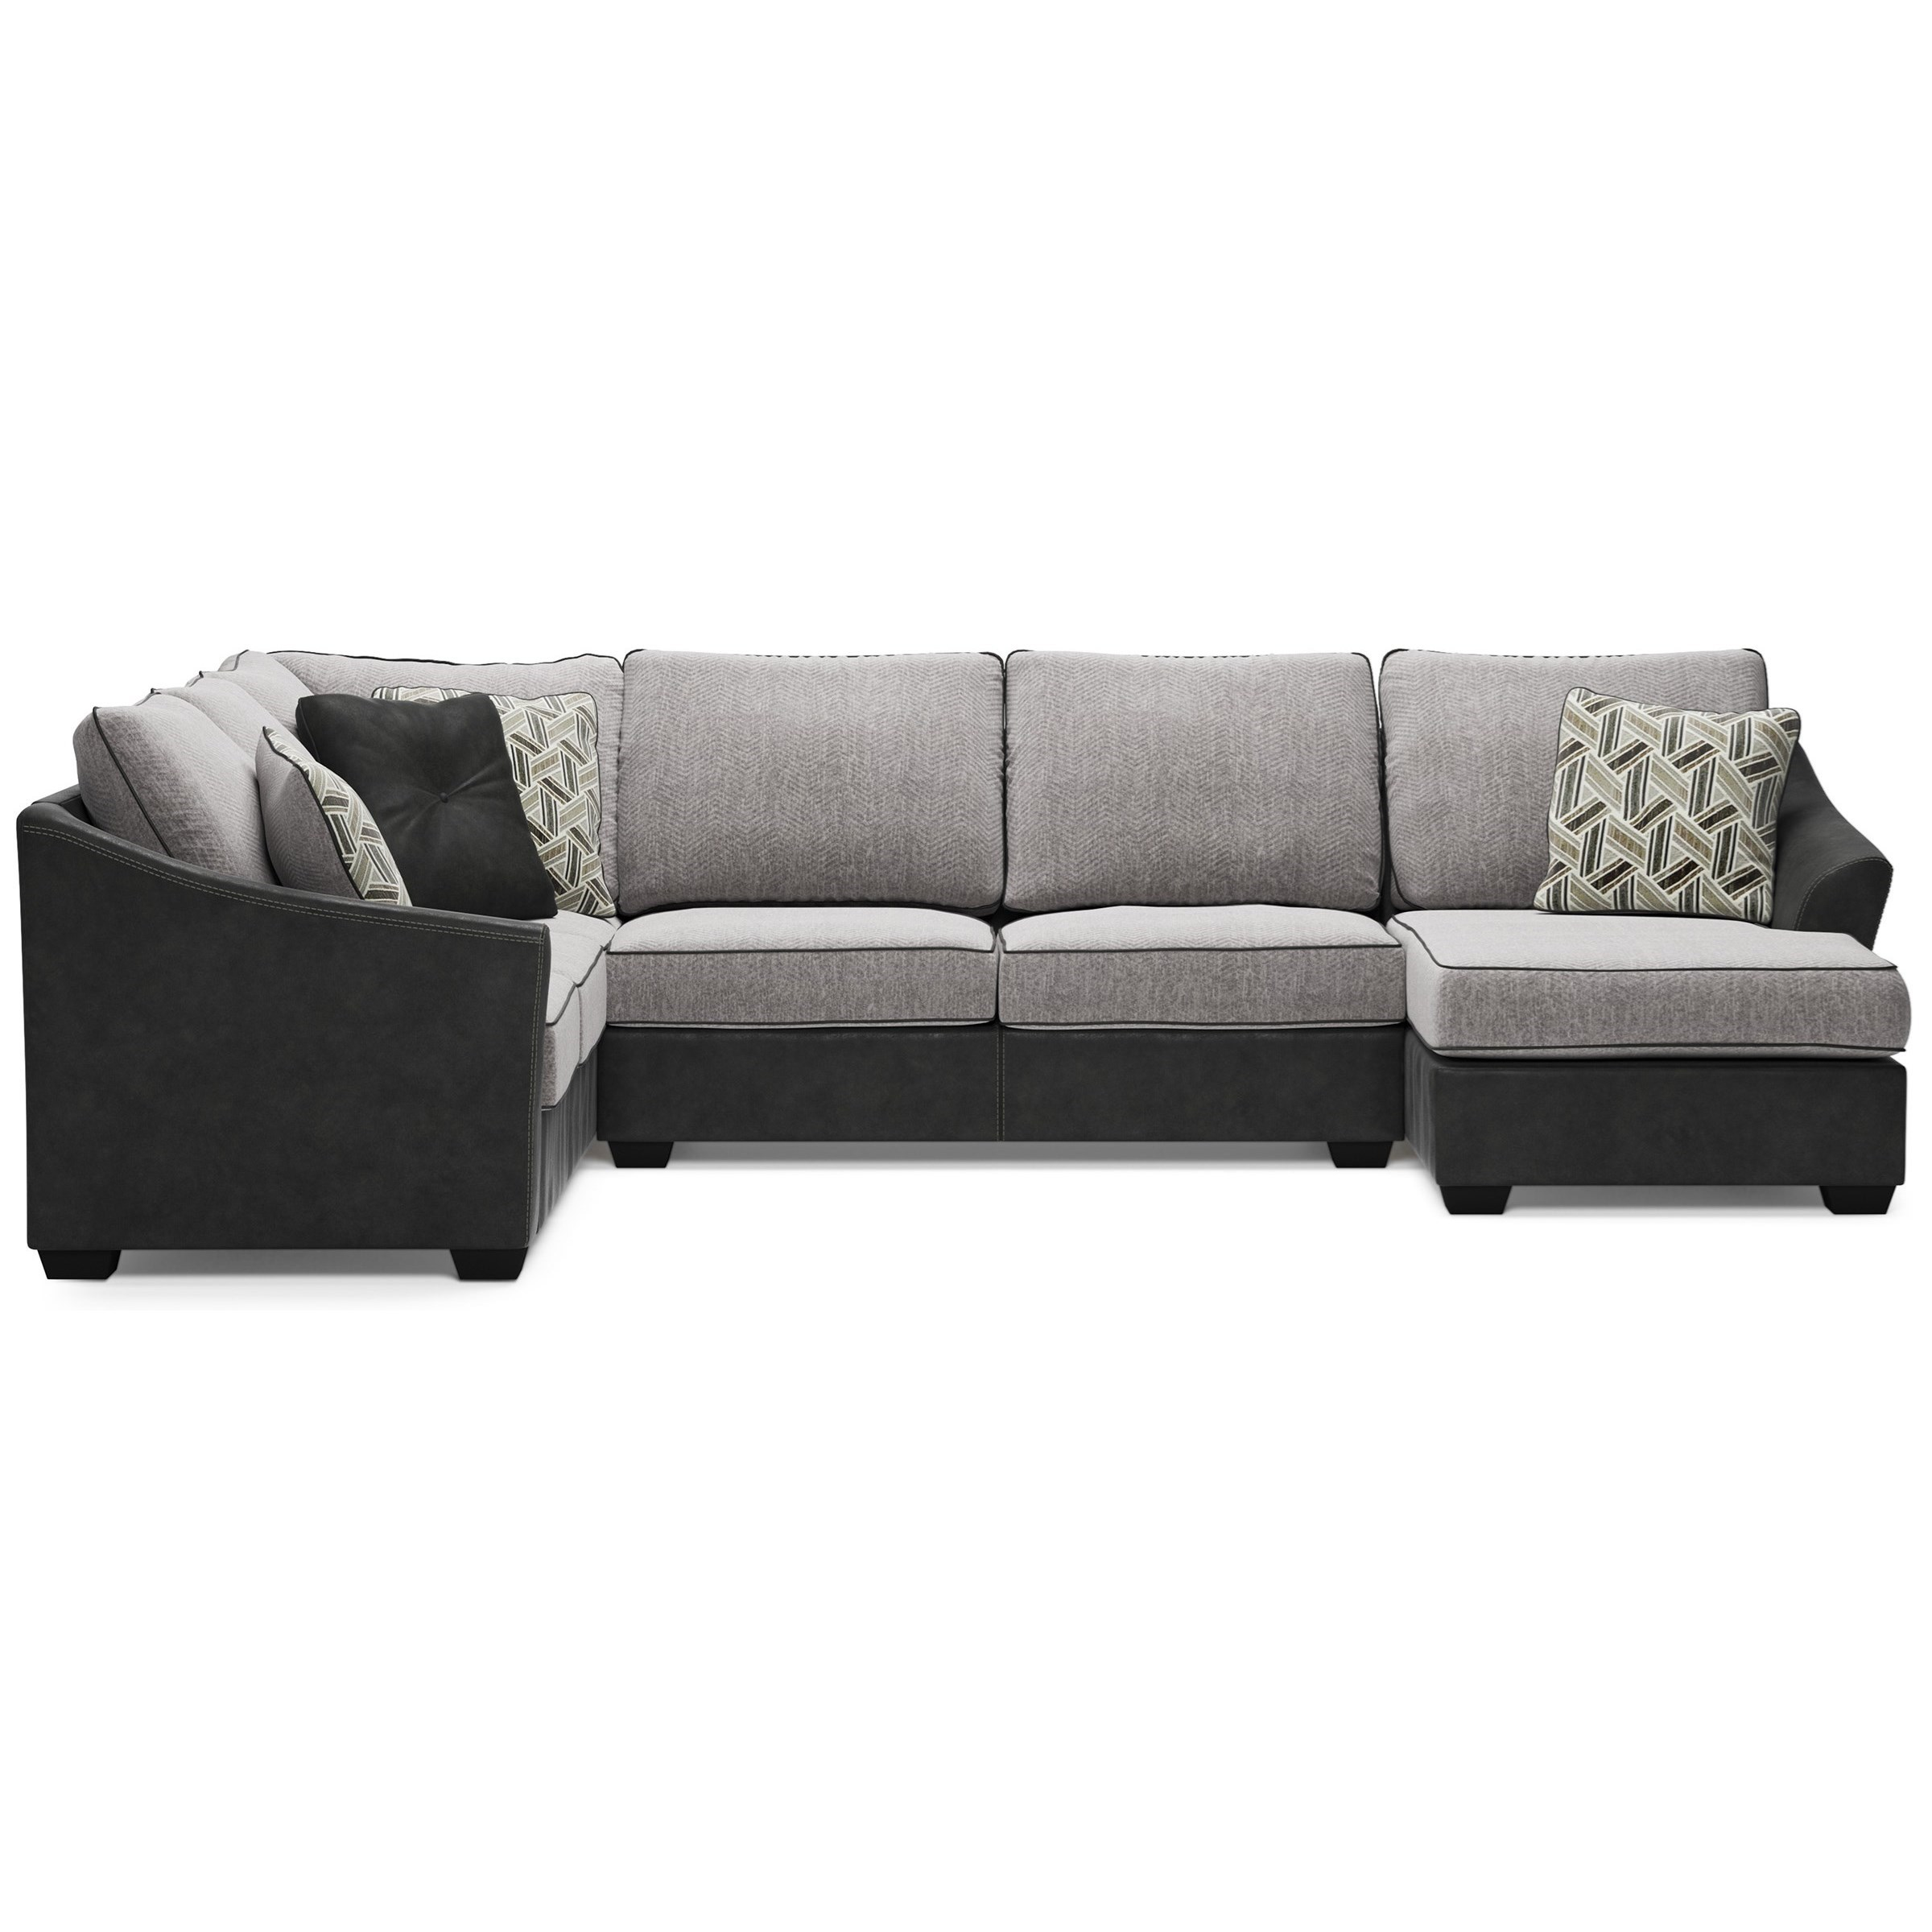 Bilgray Sectional with Right Chaise by Signature Design by Ashley at Catalog Outlet